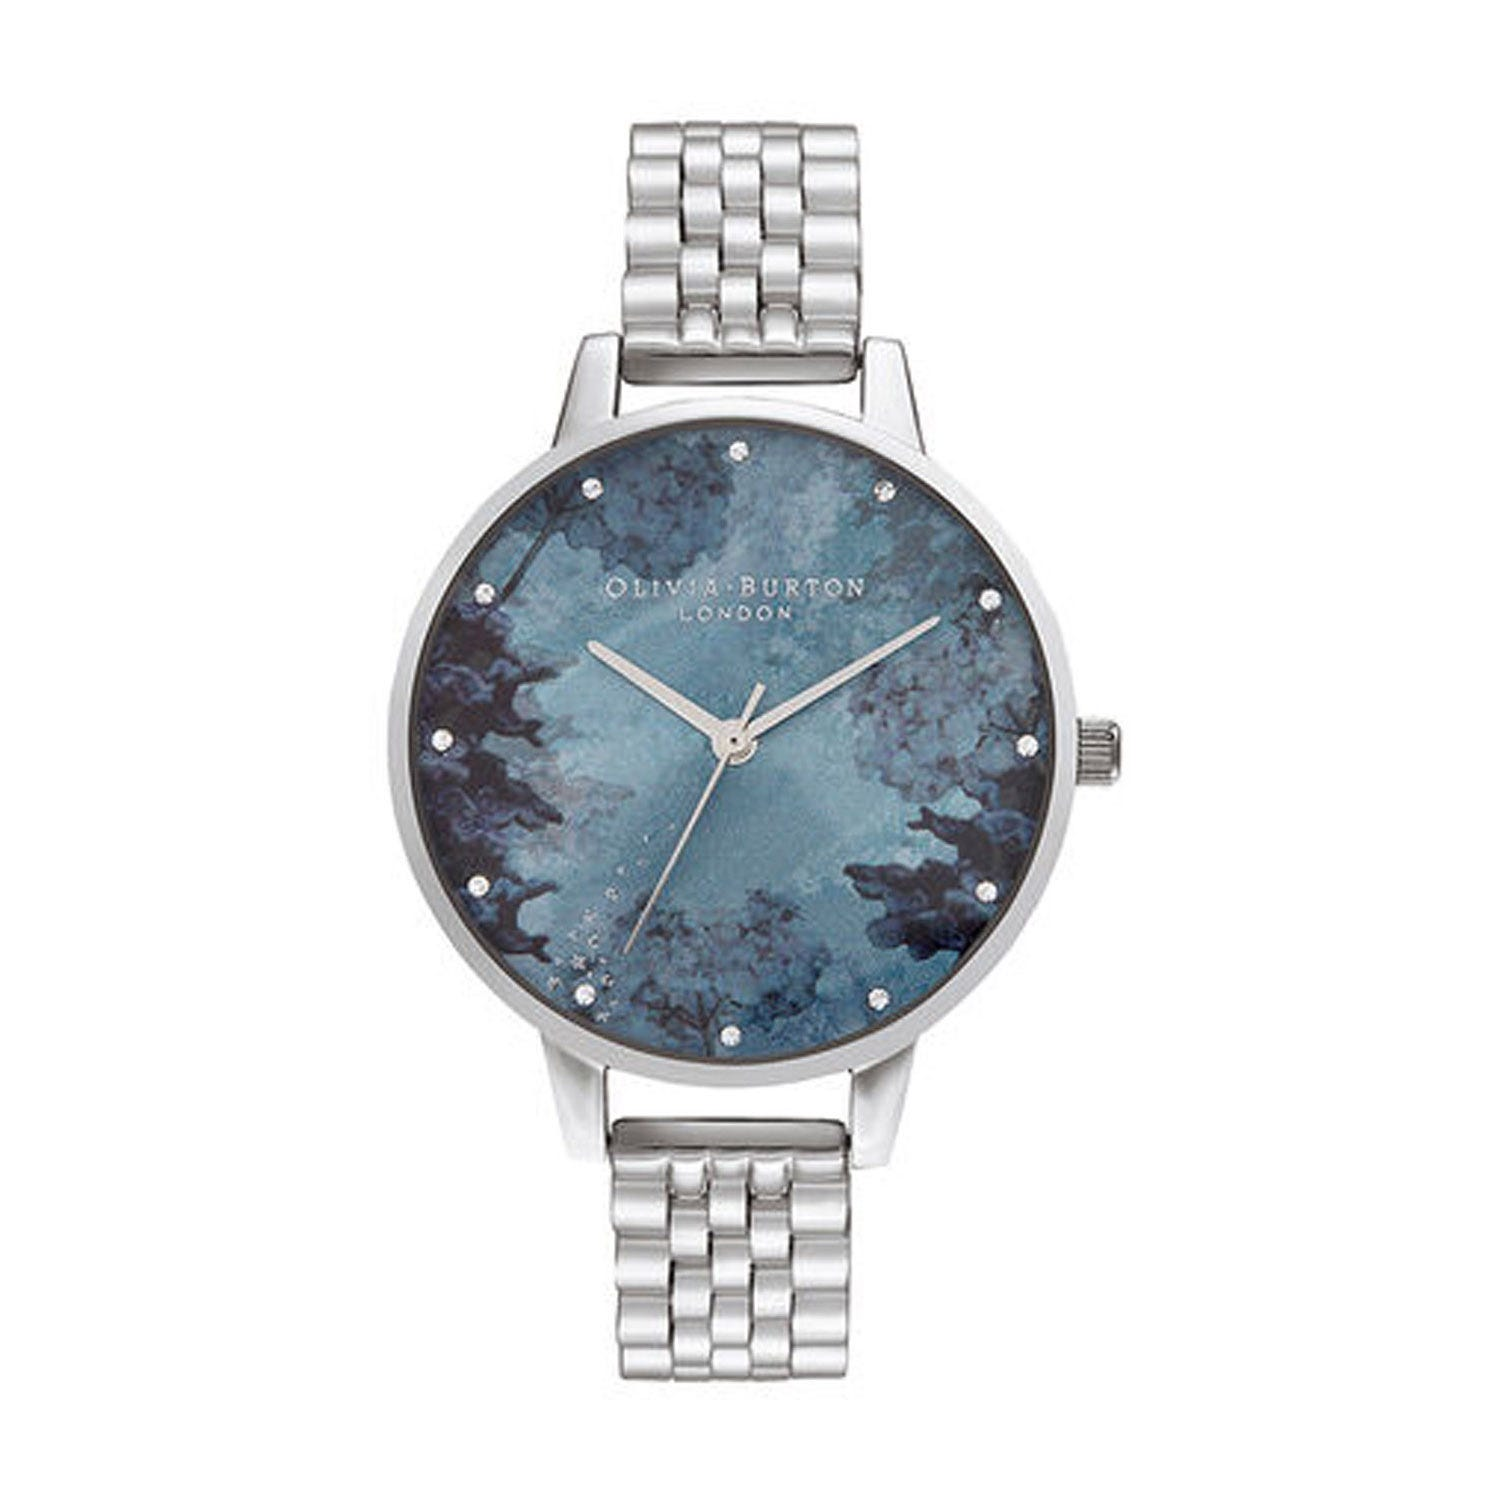 Olivia Burton Under The Sea Blue Dial & Silver-Toned Bracelet Ladies' Watch